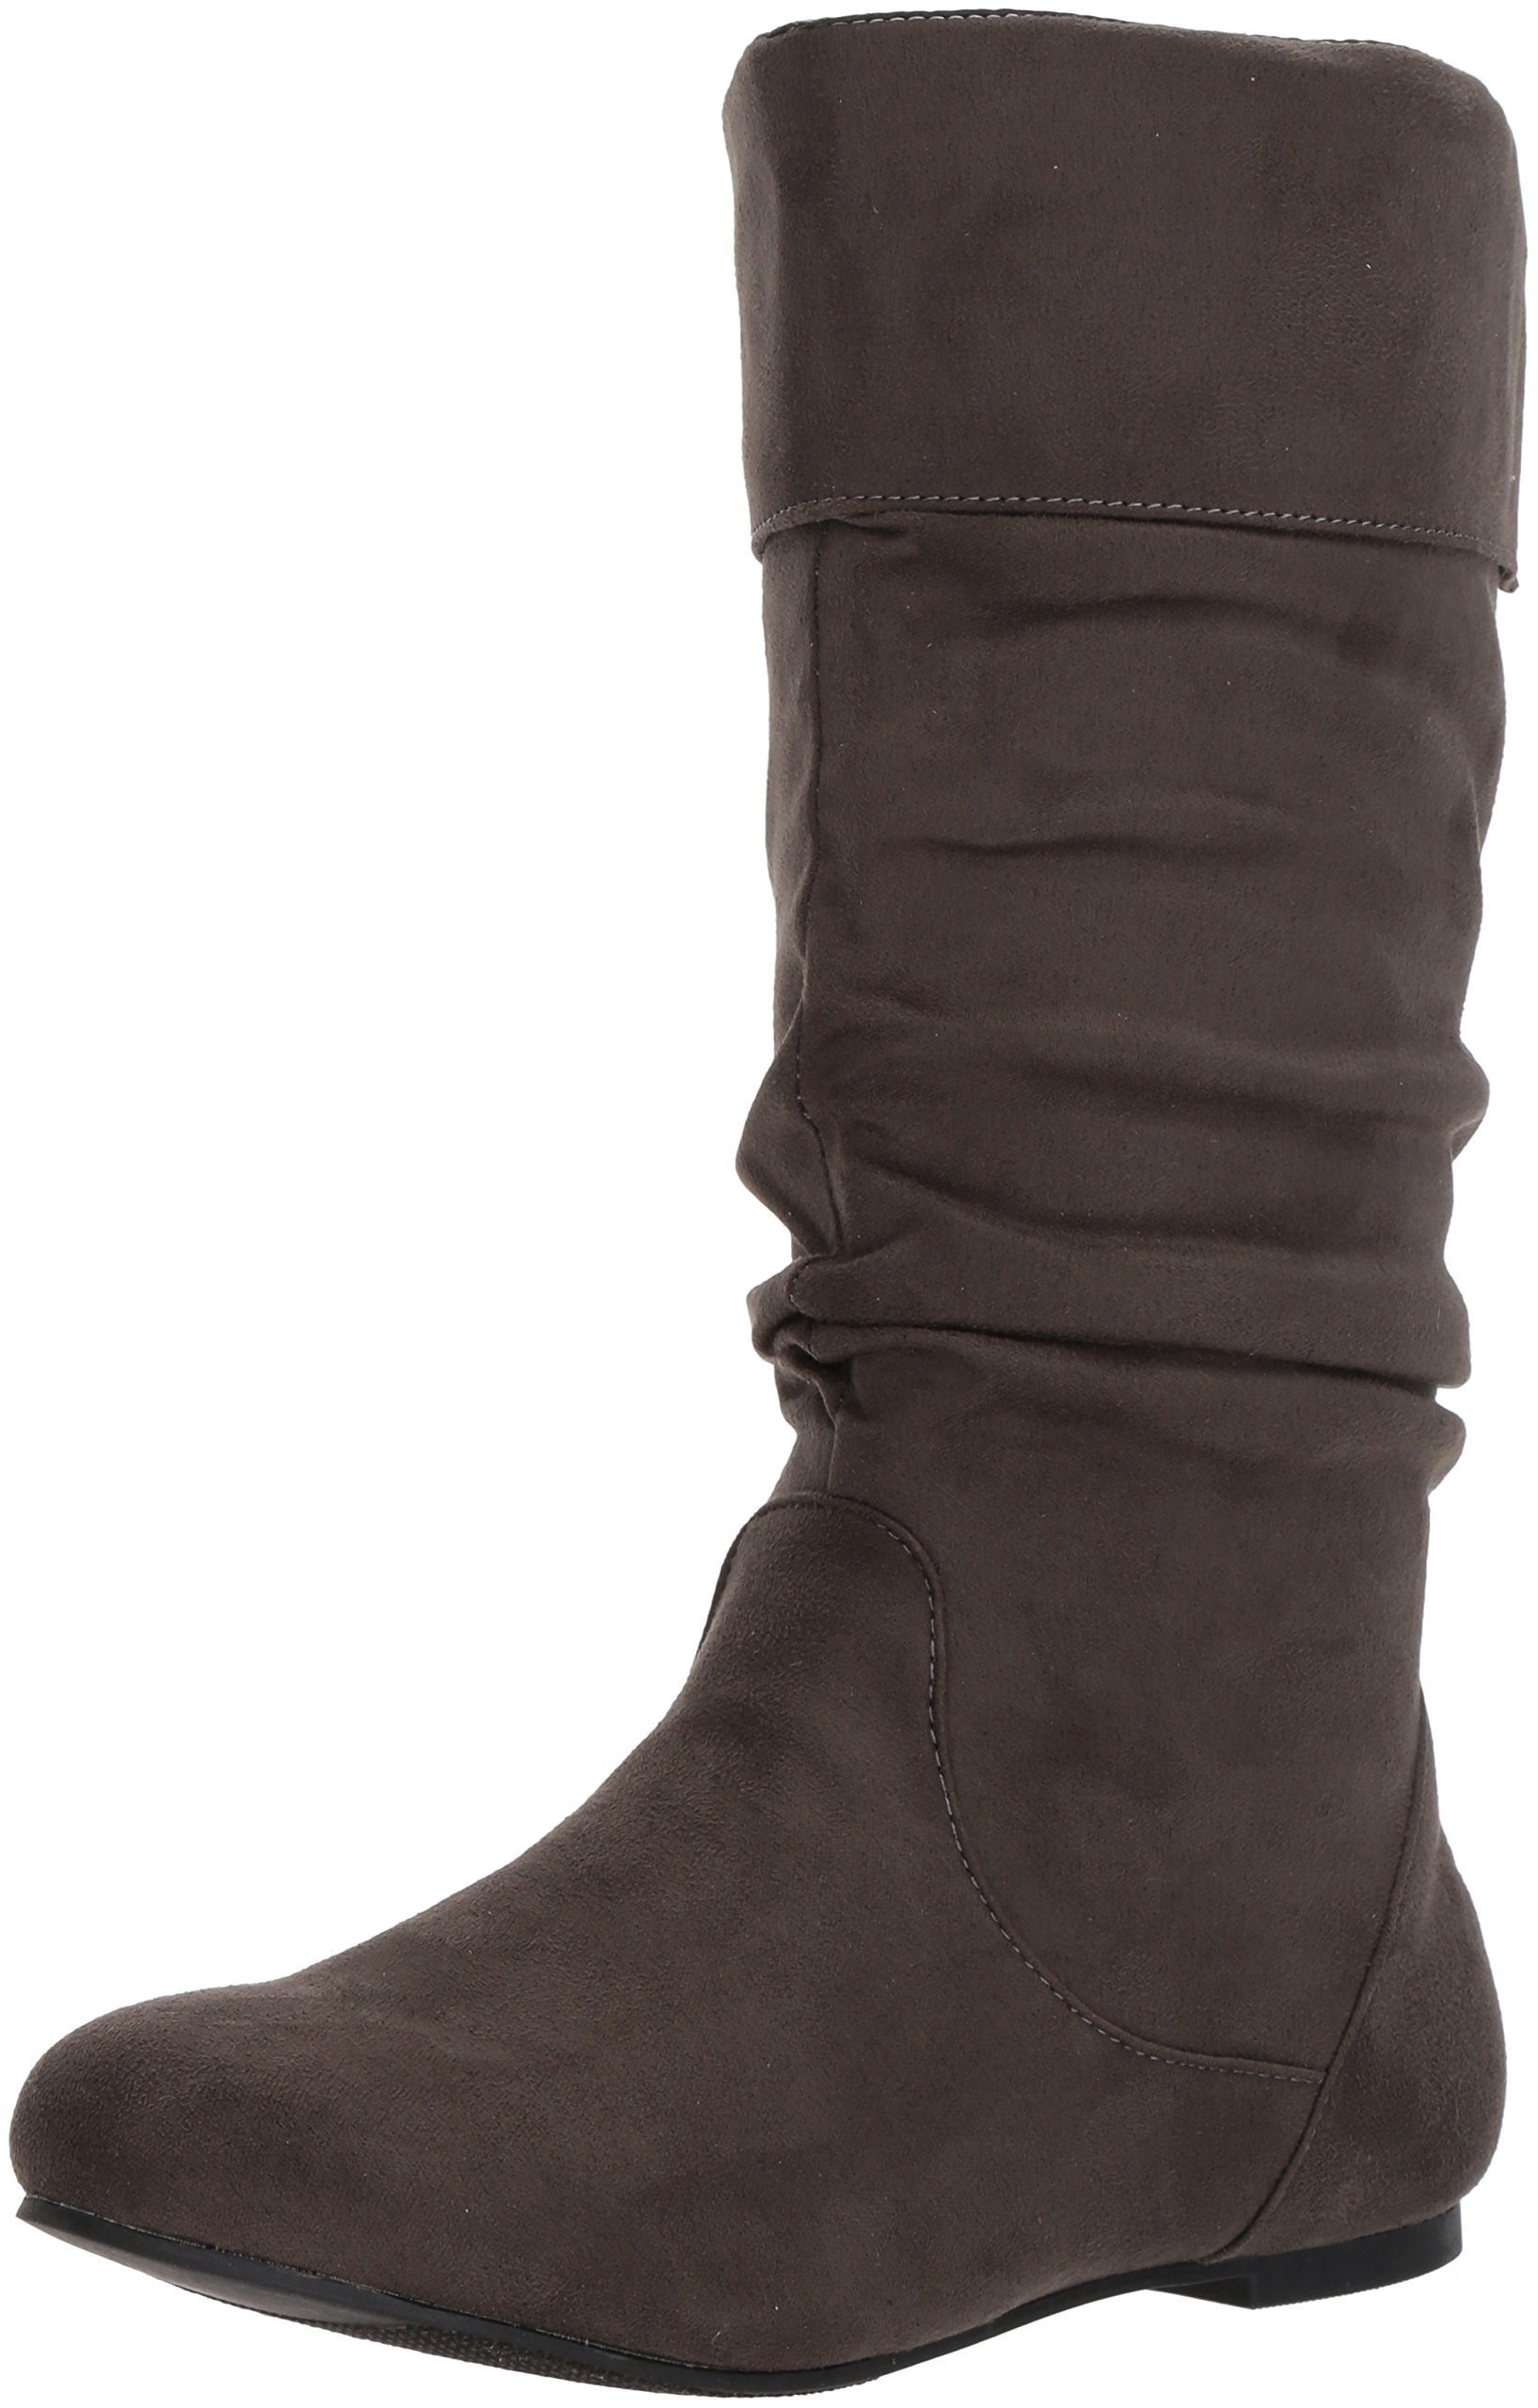 23488b539348 Brinley Co. Womens Regular Size and Wide-Calf Microsuede Slouch Mid ...